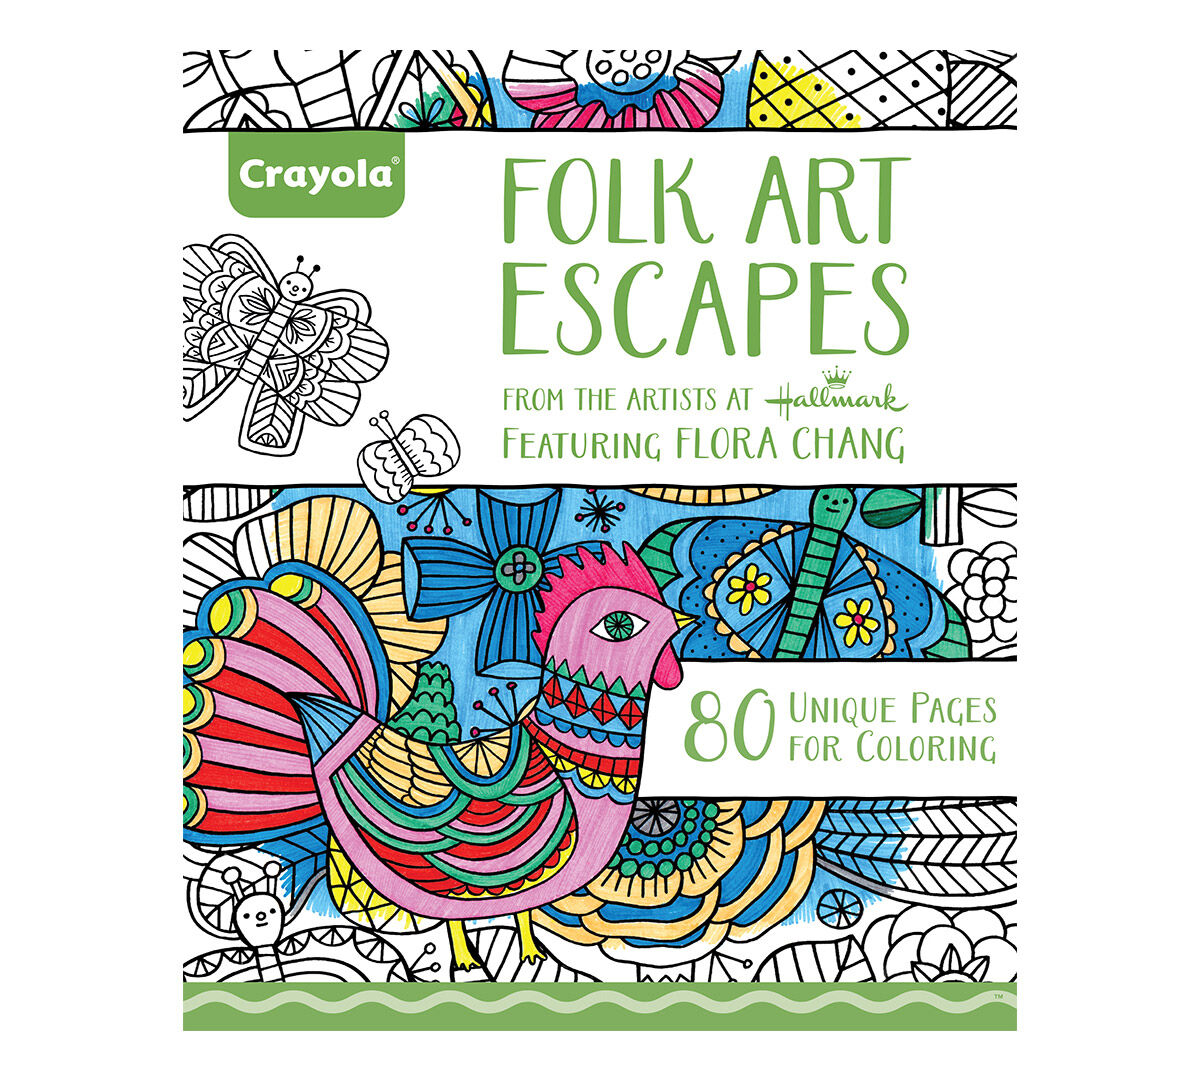 Crayola folk art Escapes, Adult Coloring Book, Relaxing Art Activity ...